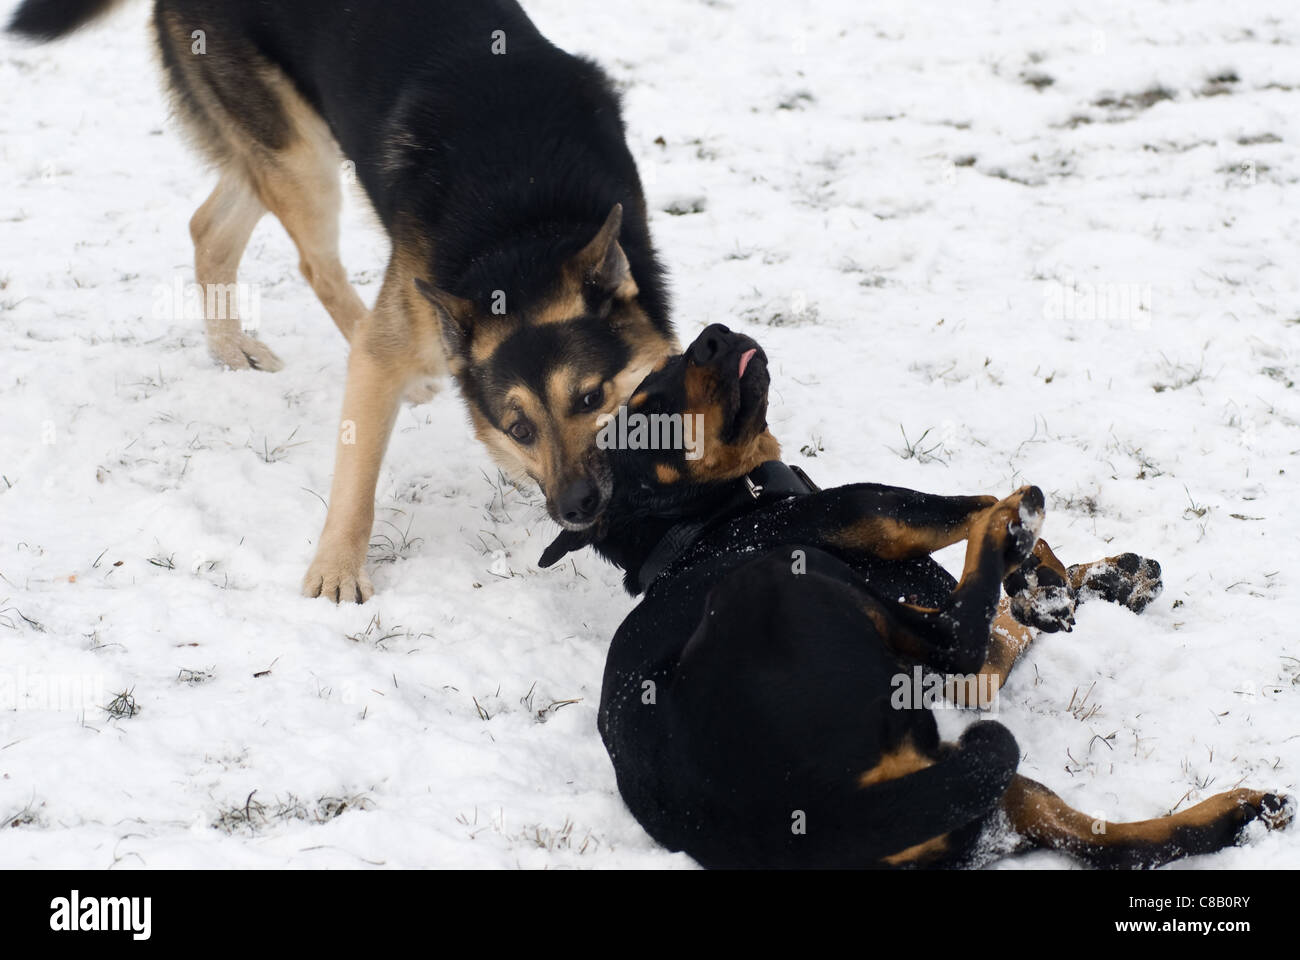 two dogs playing in the snow one is standing while the other one is lying - Stock Image